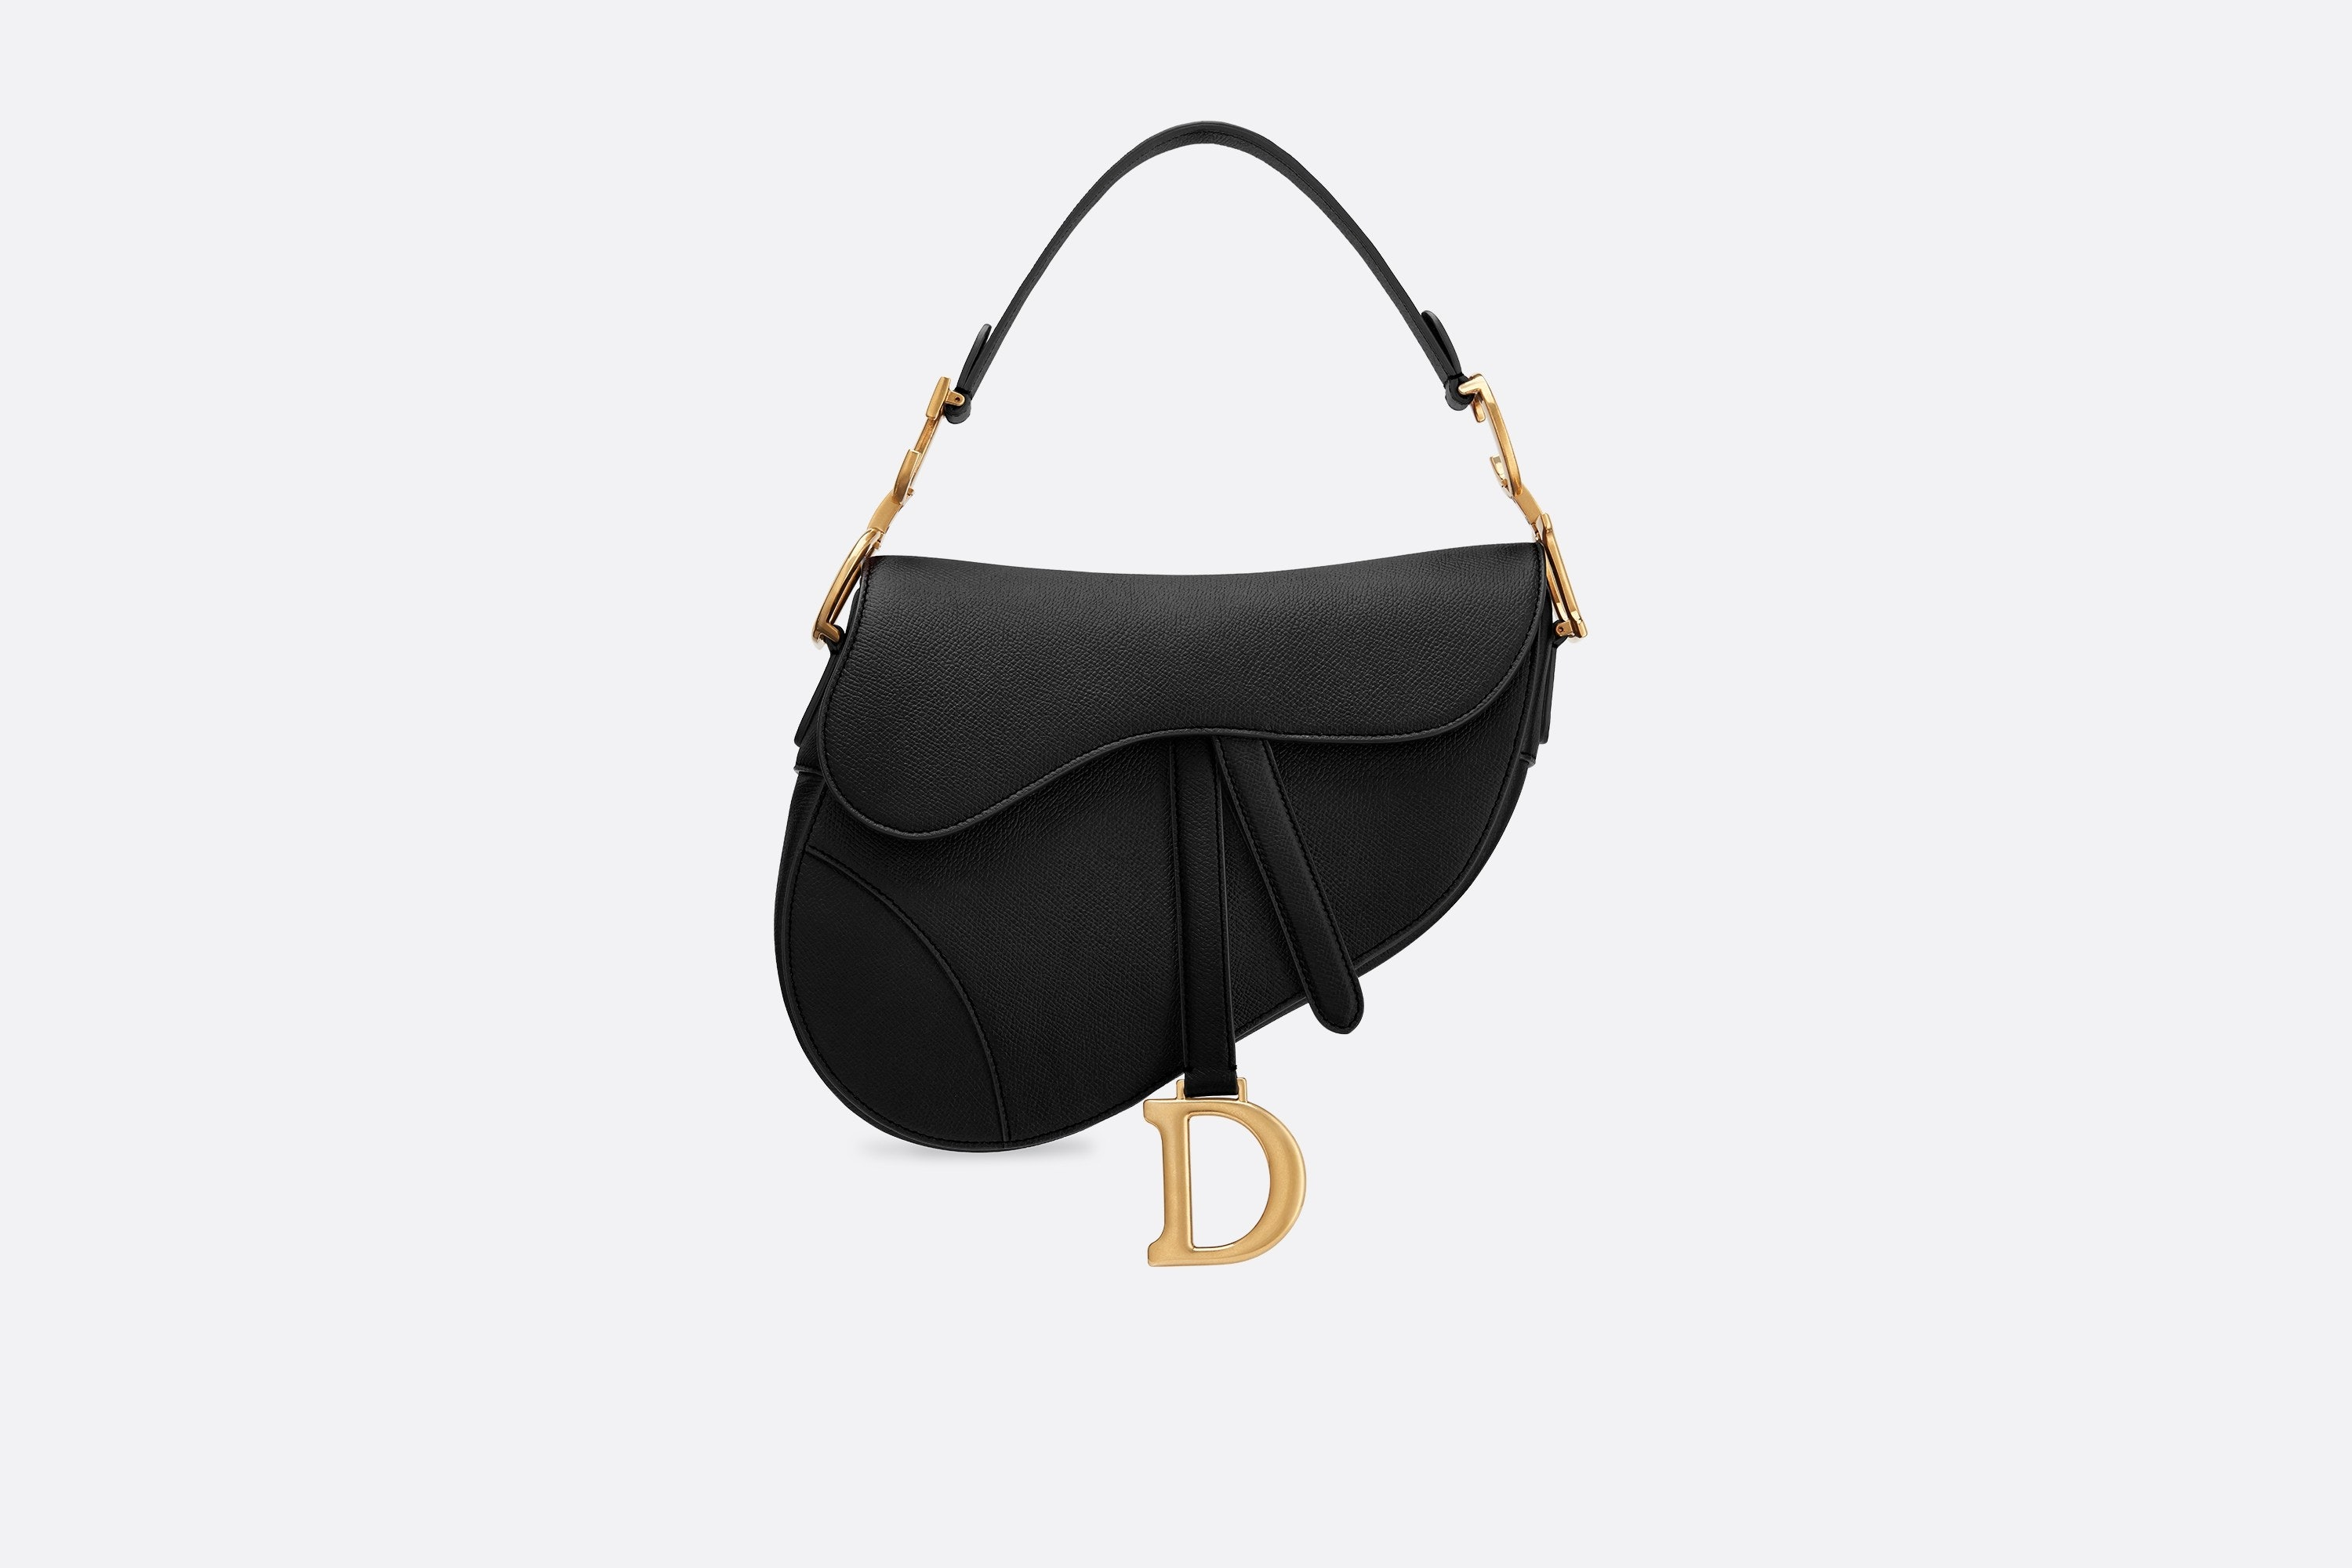 12 Trendy Handbags For 2019 To Consider Investing In This Year e0258ef4e5040